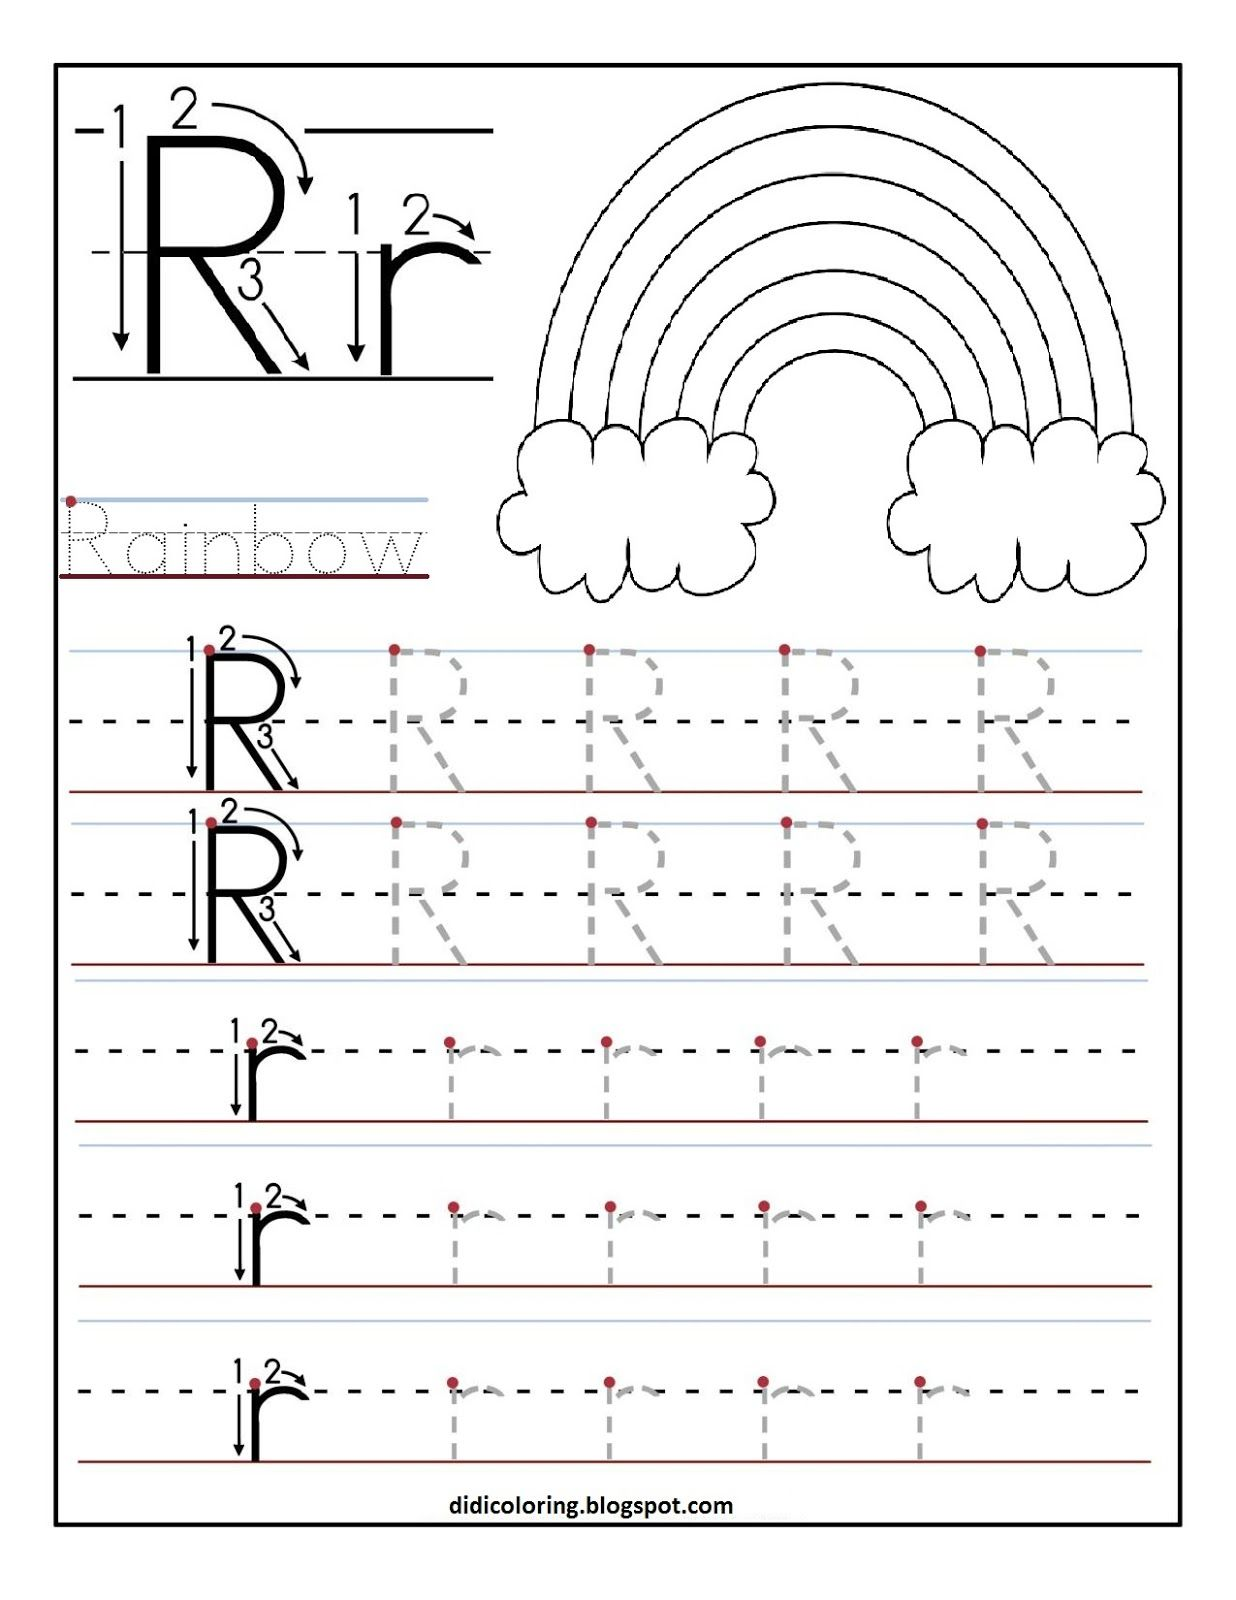 Printables Letter R Worksheets 1000 images about letter r preschool activities on pinterest letters coloring and maze